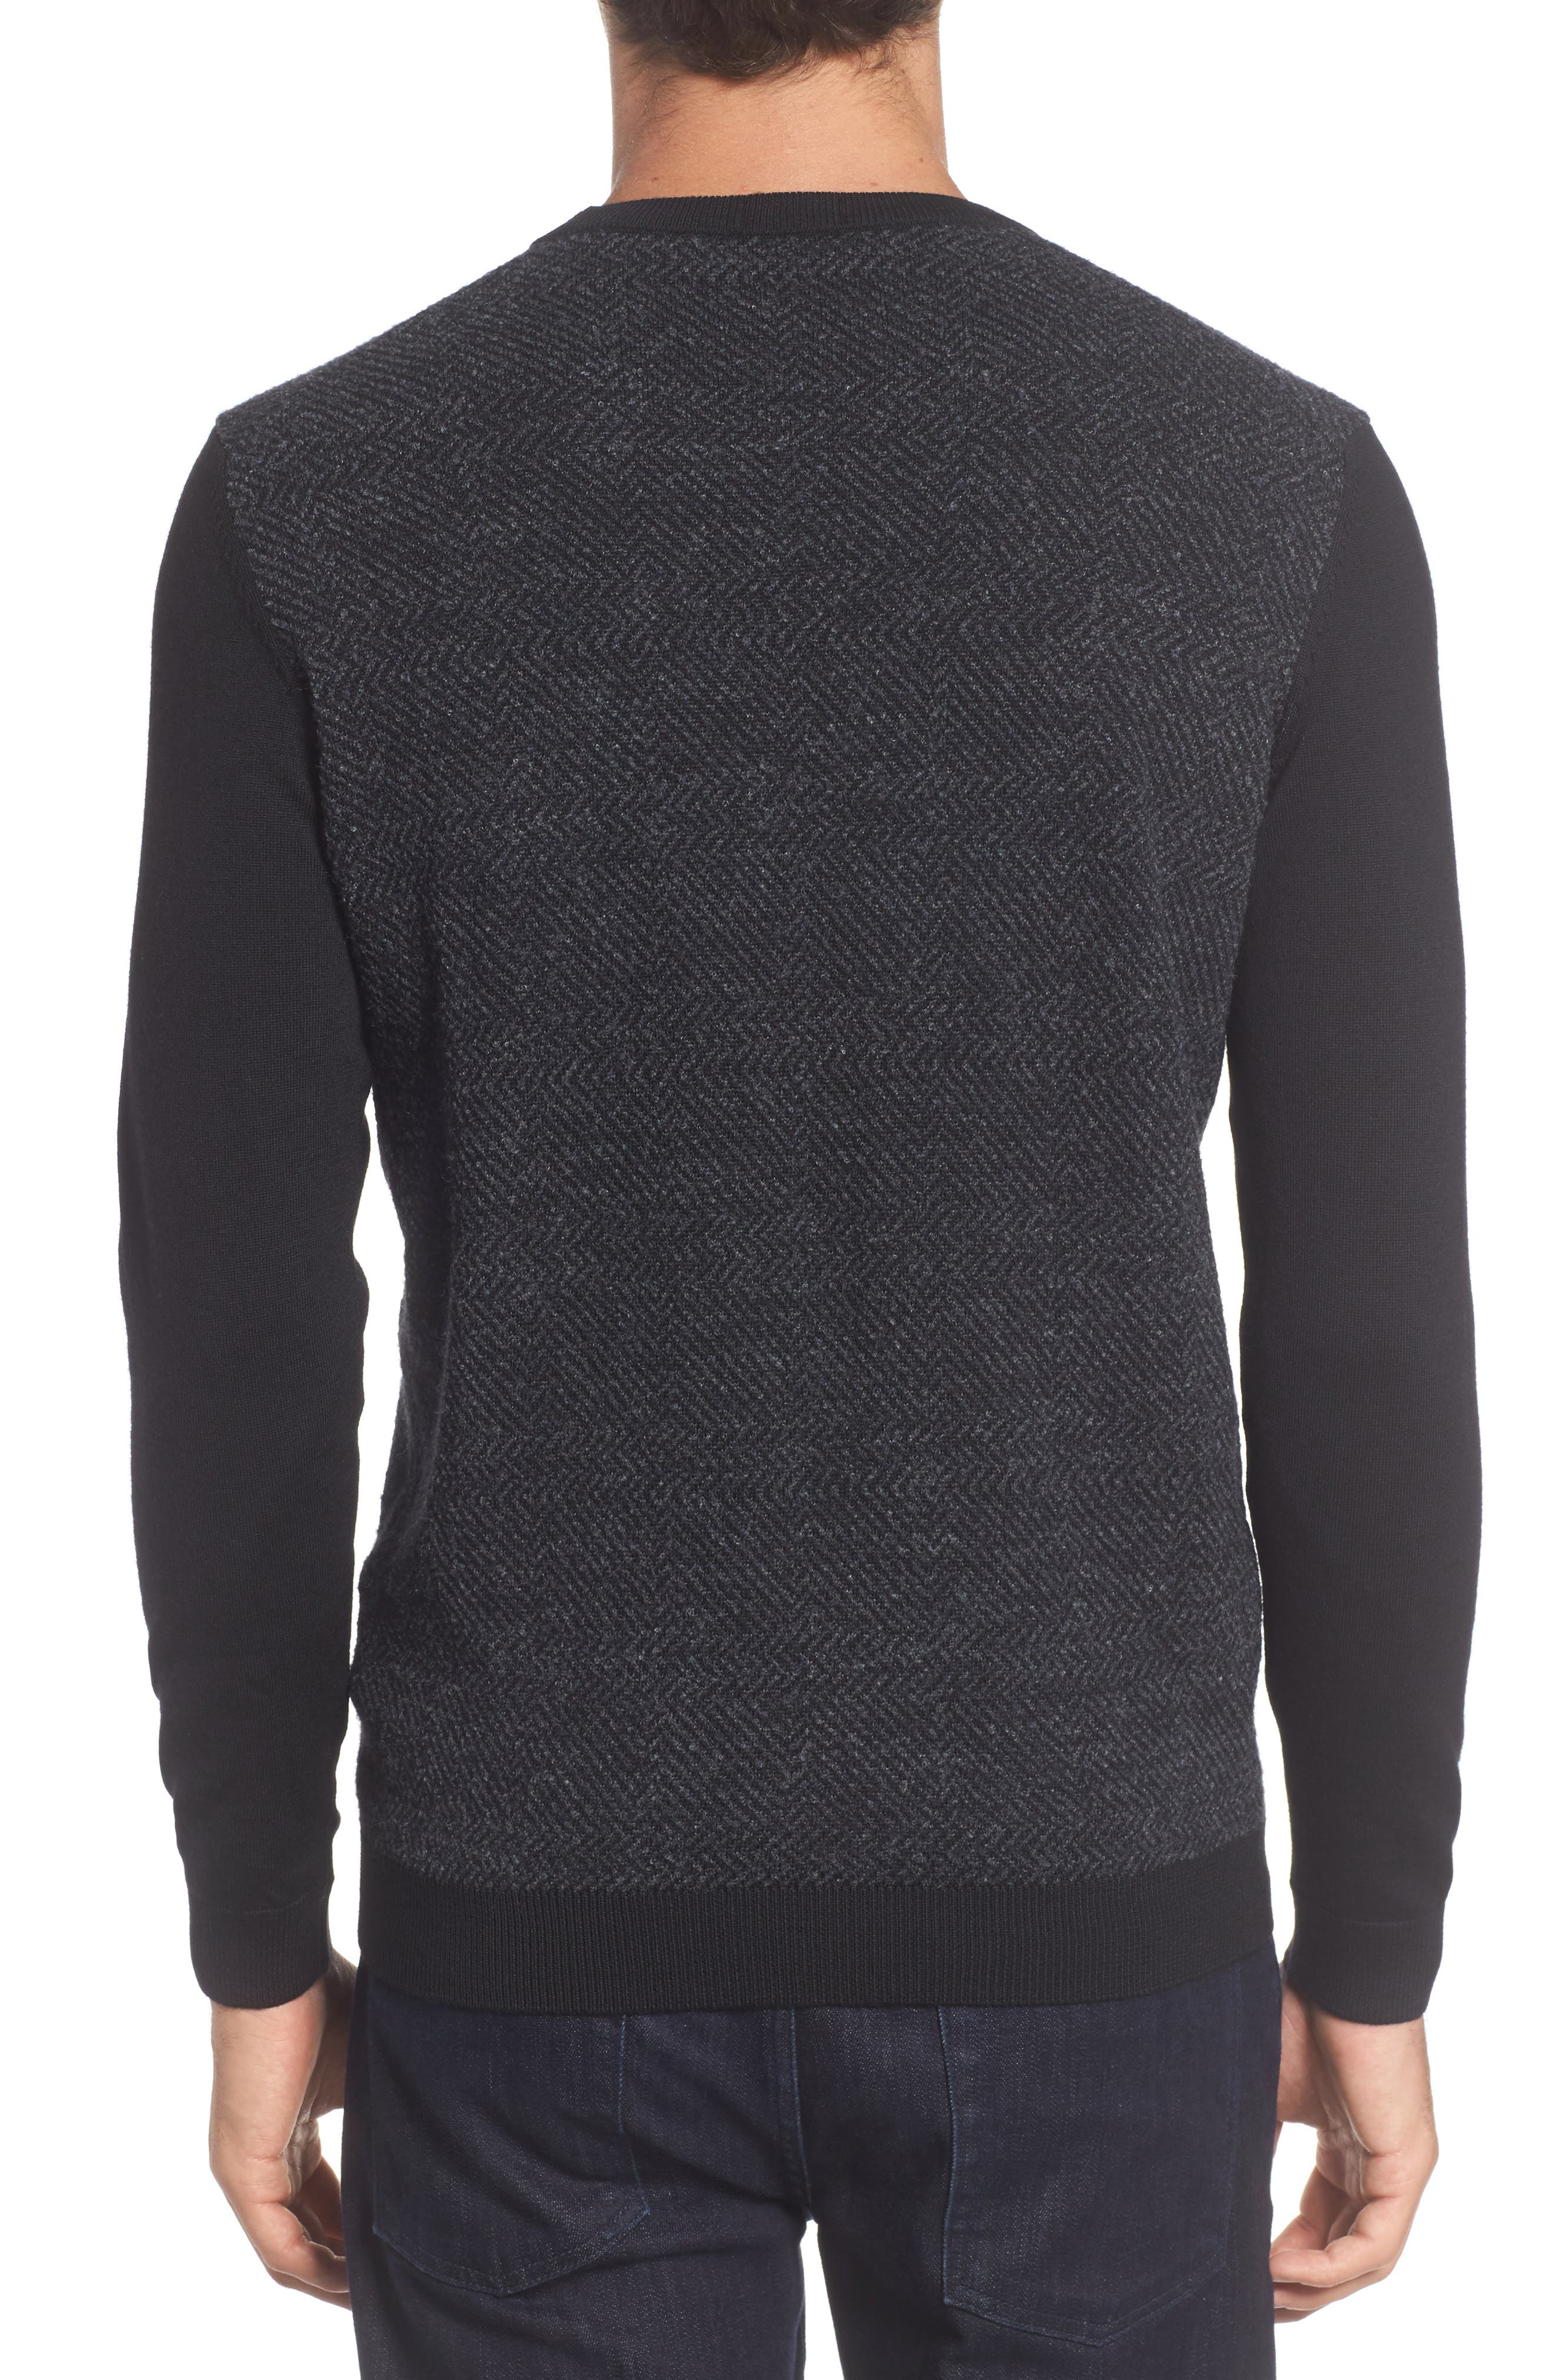 Notto Wool Blend Sweater,                             Alternate thumbnail 2, color,                             061